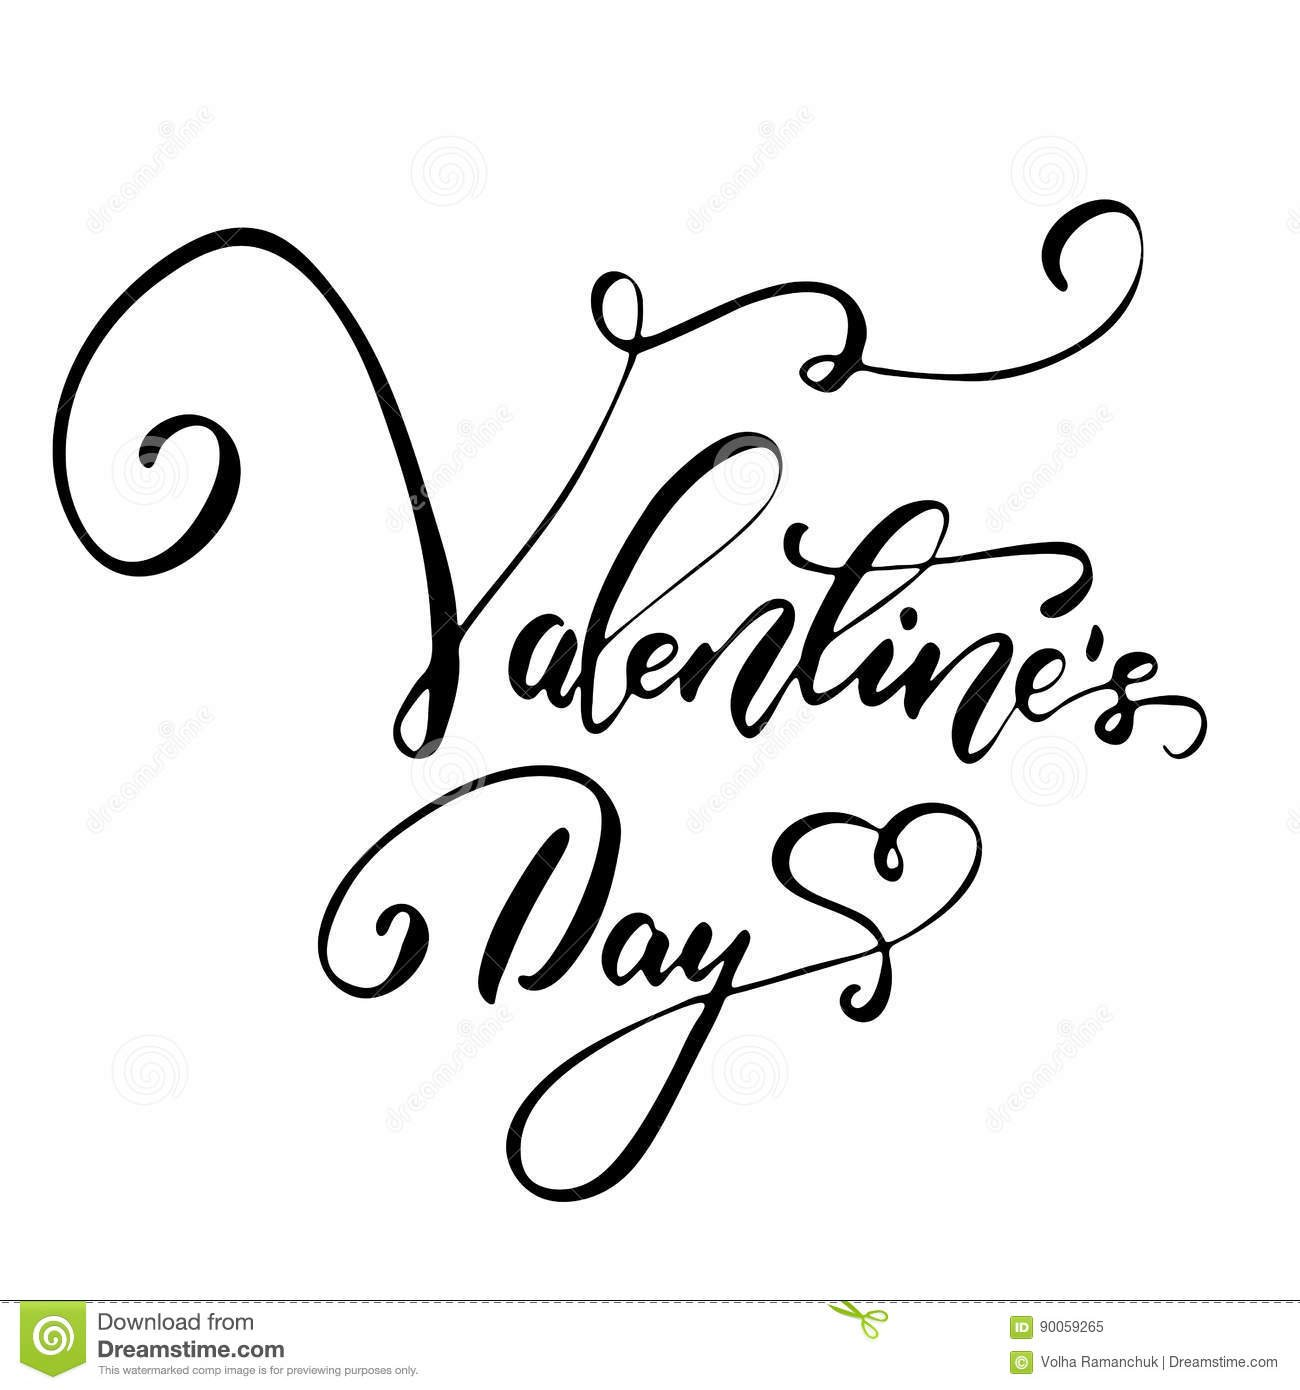 Valentine's Day - Freehand Ink Inspirational Romantic Quote Stock Illustration - Illustration of font, overlay: 90059265